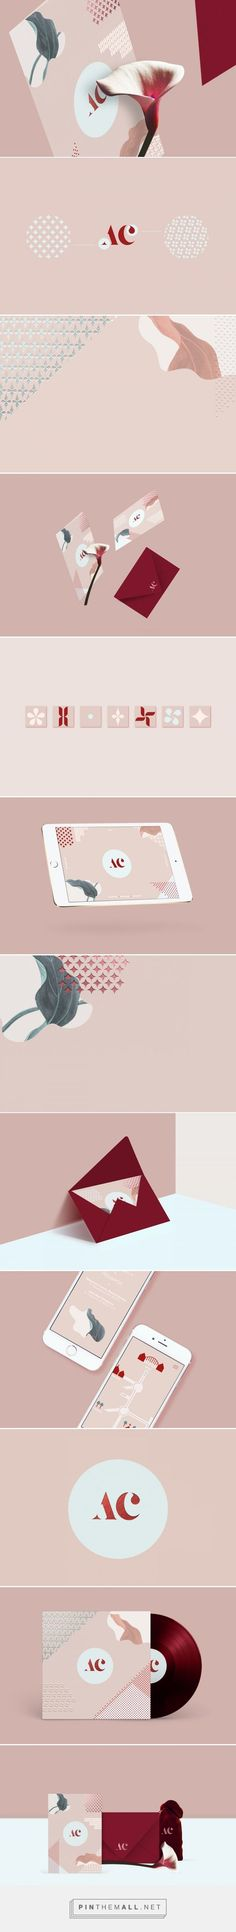 AC on Behance - created via https://pinthemall.net/?utm_content=bufferad580&utm_medium=social&utm_source=pinterest.com&utm_campaign=buffer